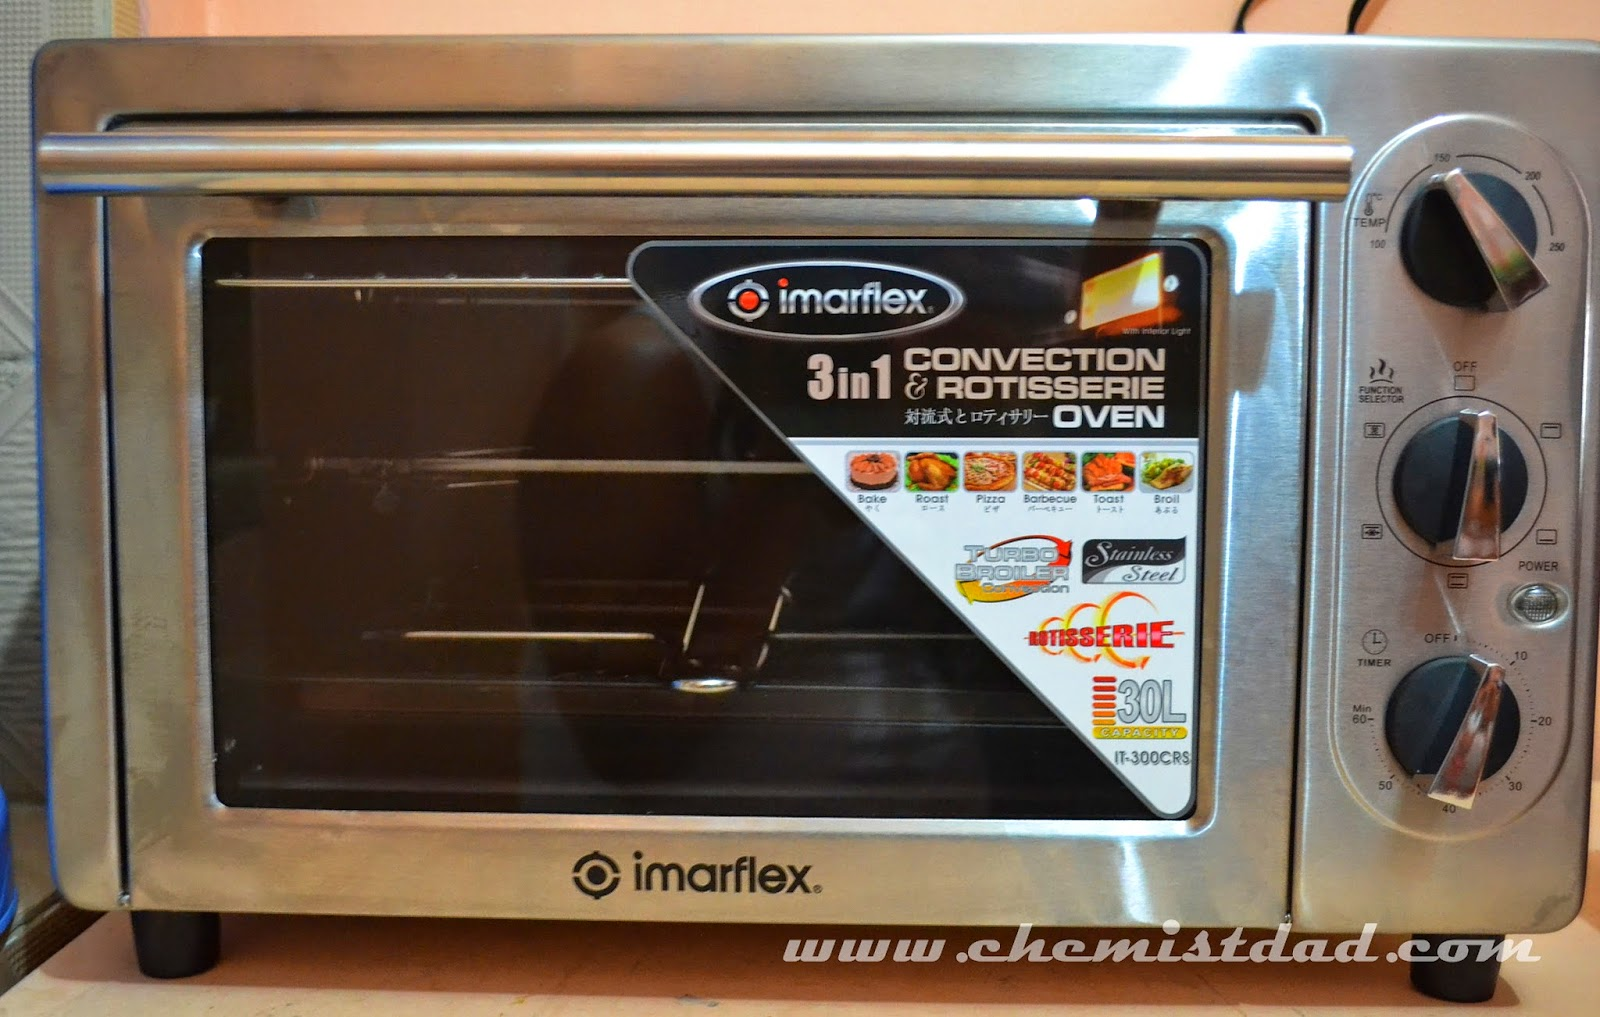 Imarflex 3 In 1 Convection And Rotisserie Oven Review